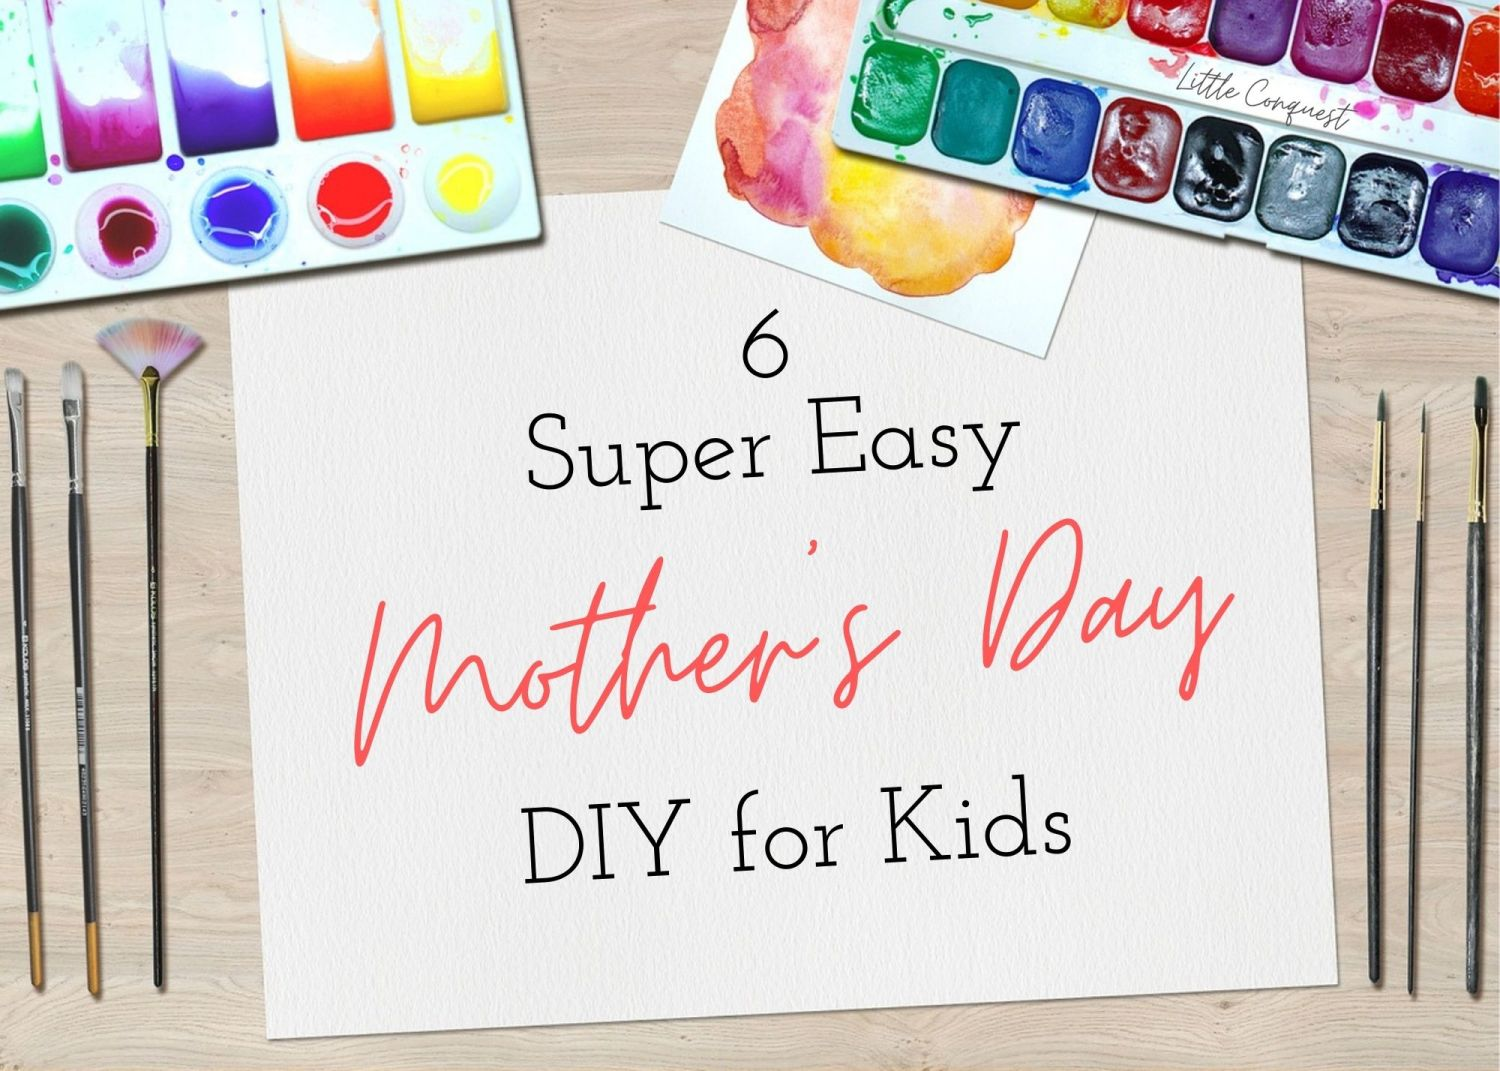 DIY, do it yourself, crafts, handmade, gifts, kids, holiday, mothers day, super easy, cute, functional, easy DIYs, kids projects, gifts for mom, little conquest